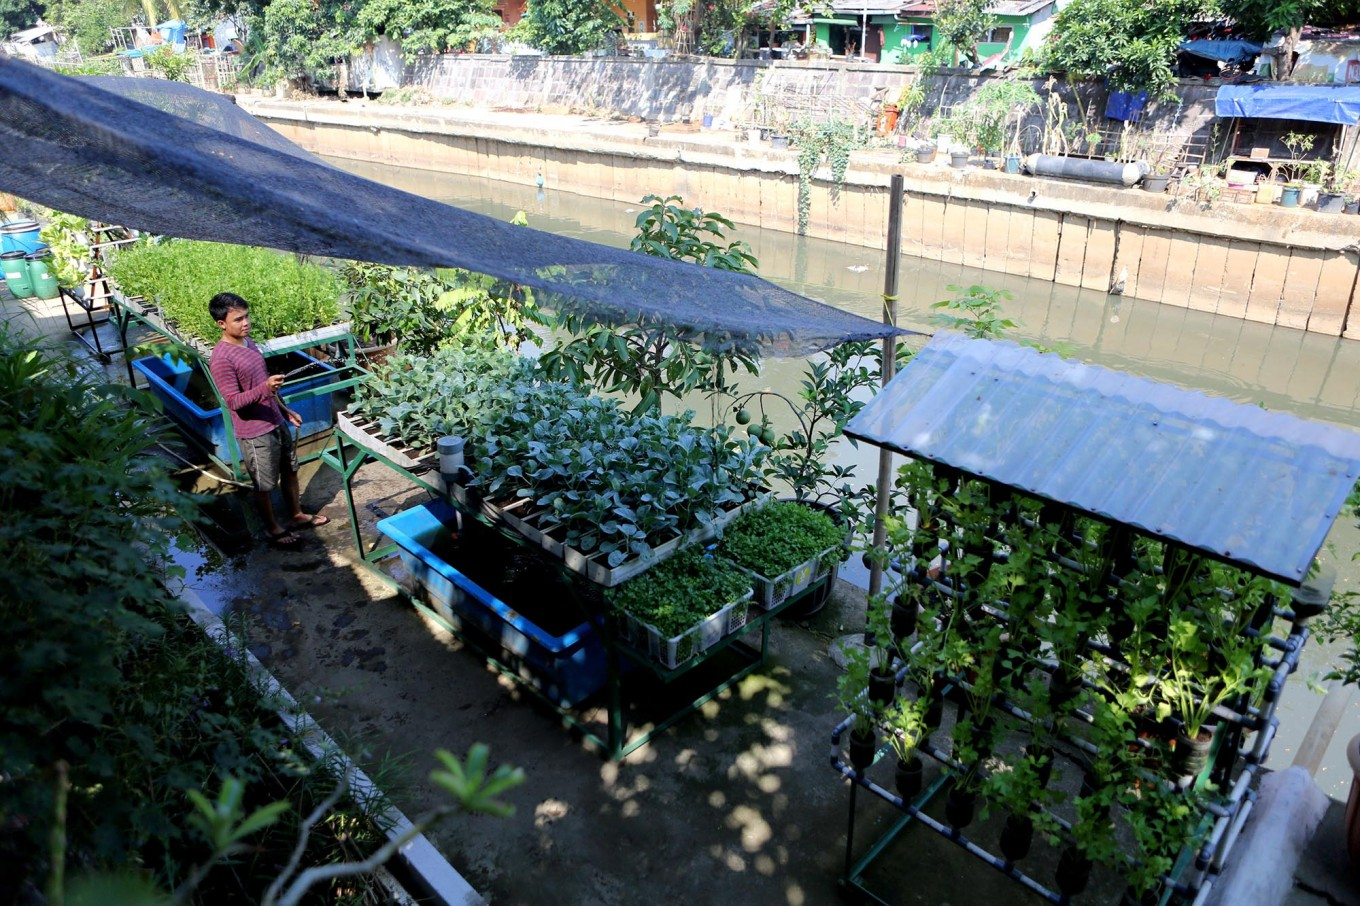 Urbanites find solace in urban farming amid COVID-19 quarantine